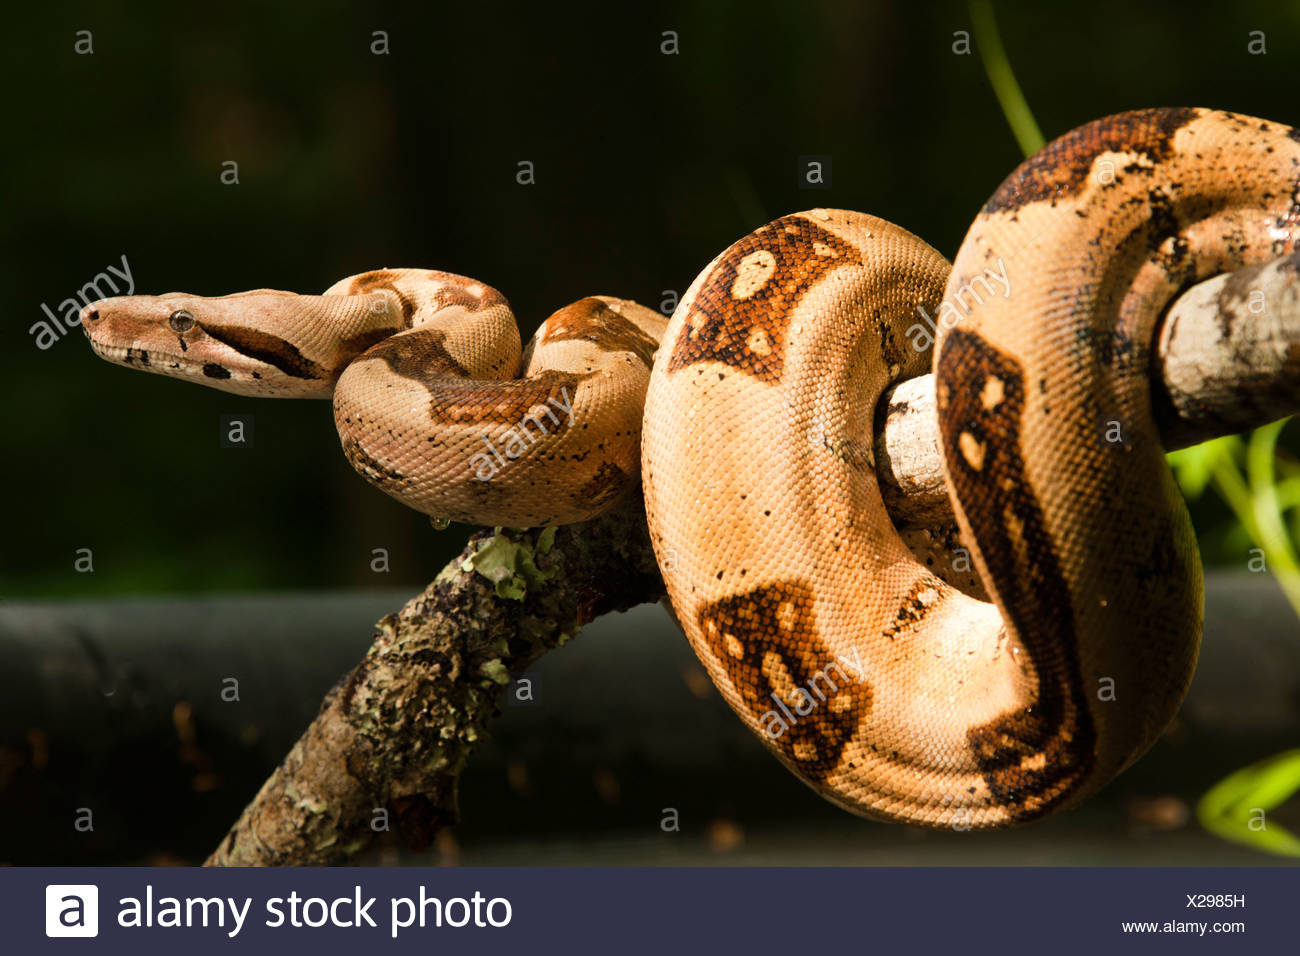 Boa Constrictor klammerte sich am Stick, Pennsylvania, USA Stockbild